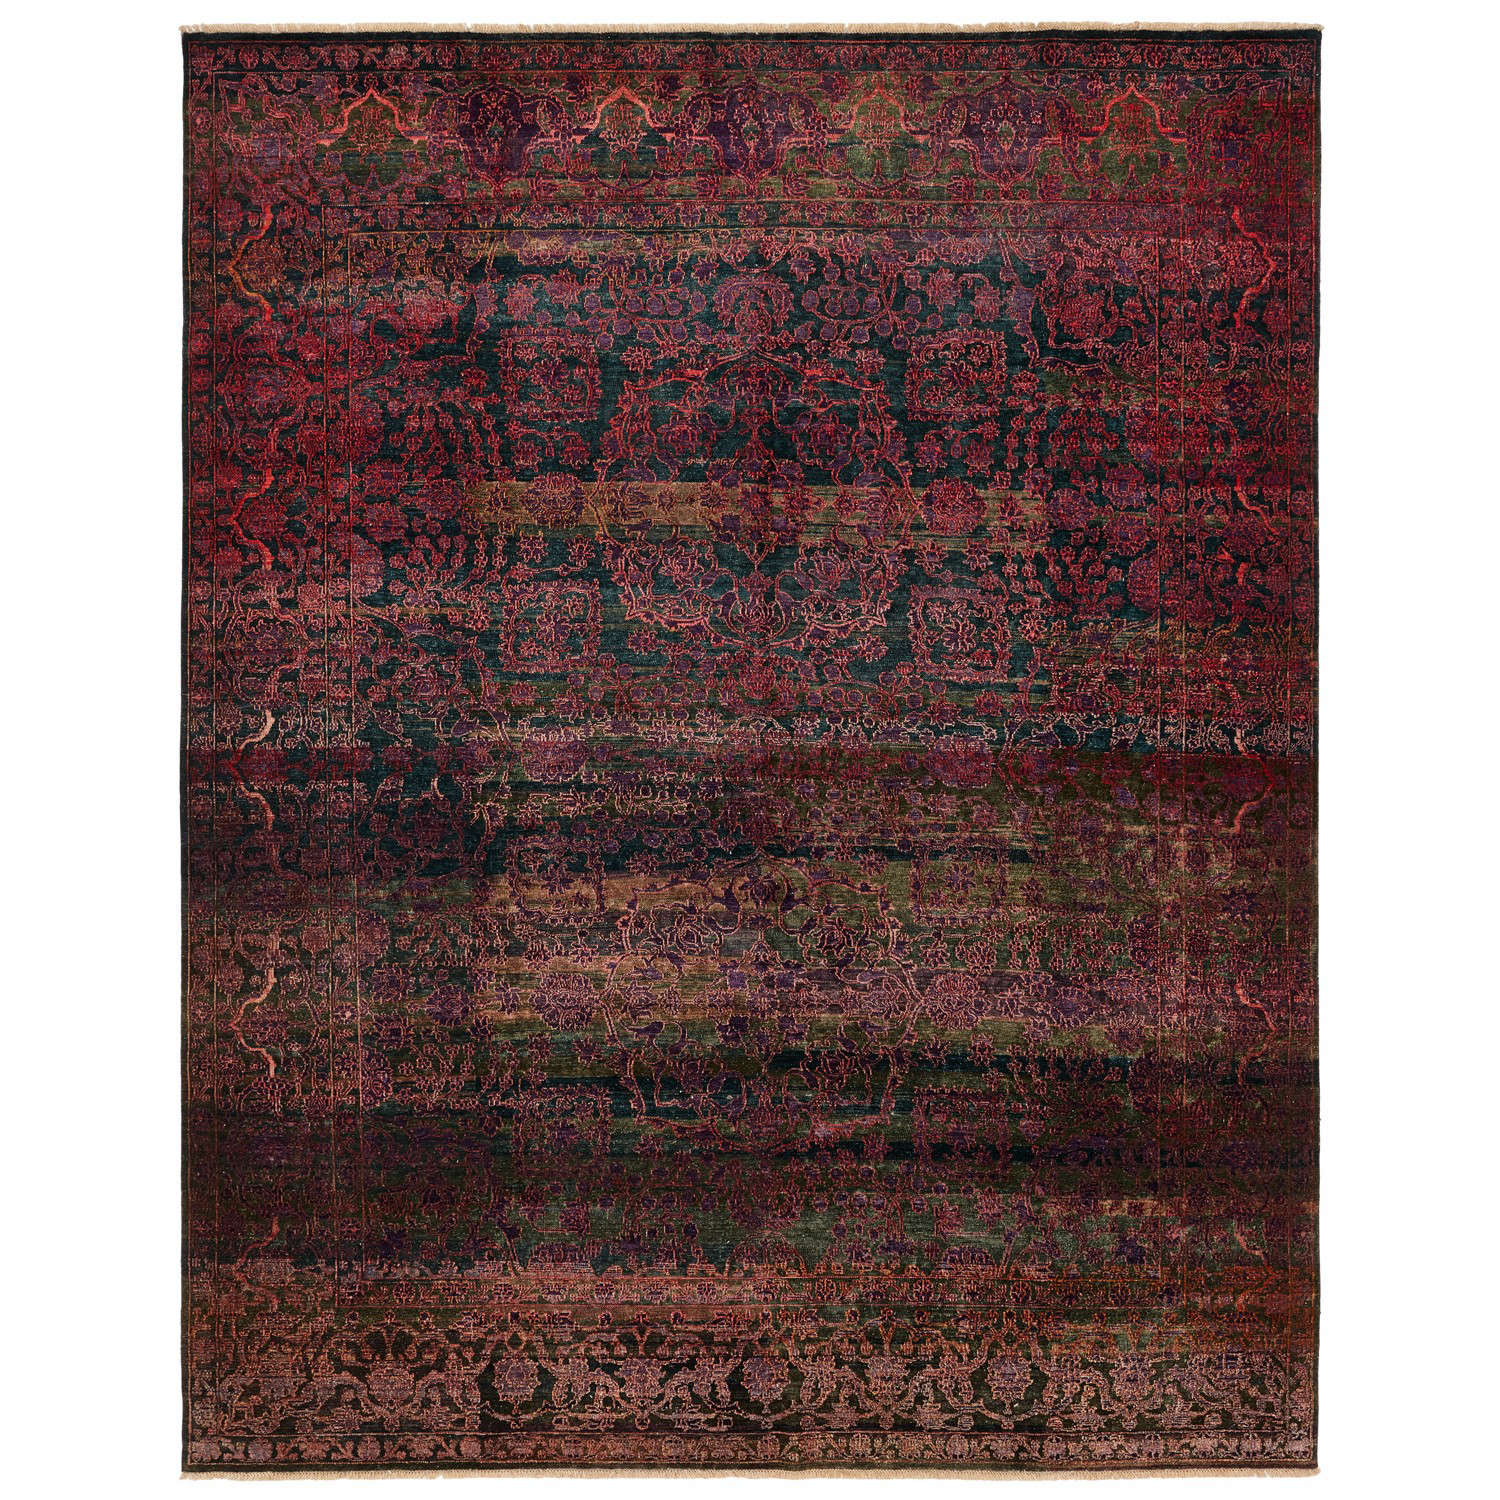 overdyed designs colorful home gallery from abc rug in persian modern view carpet and rugs